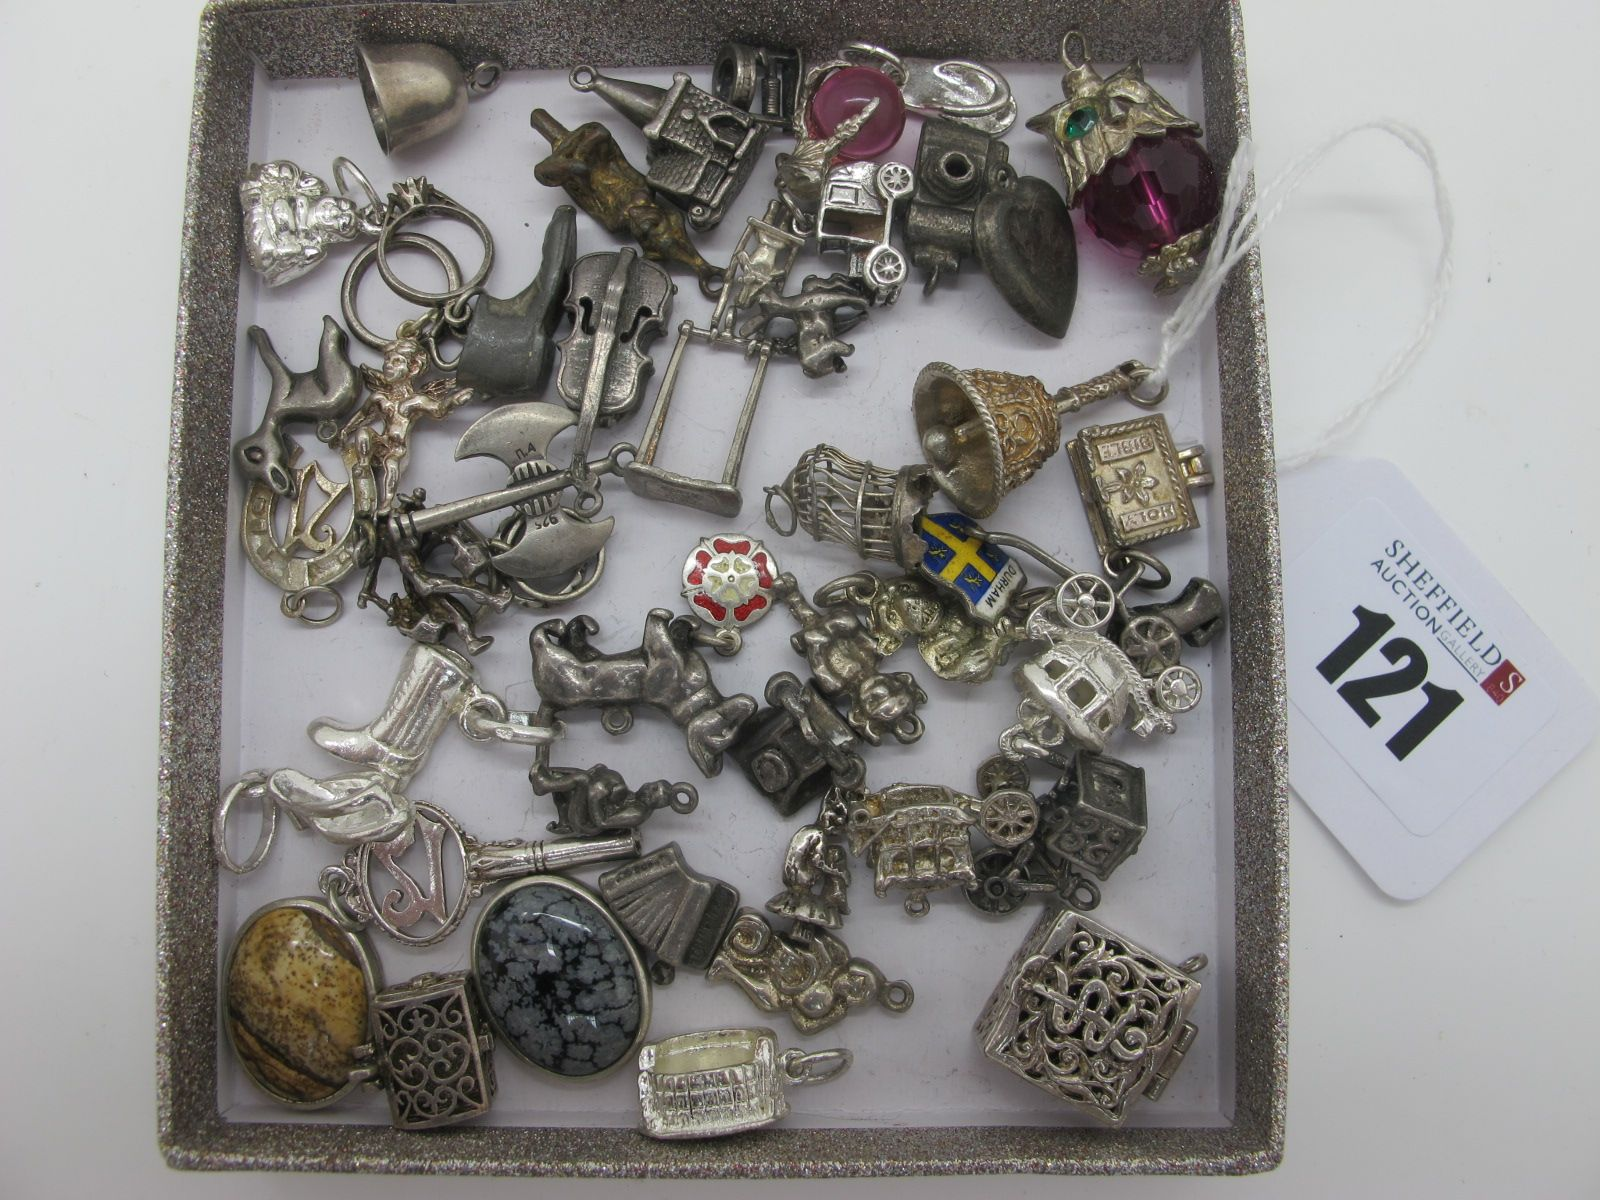 A Collection of Assorted Novelty Charm Pendants, including bell, birdcage, 21 horseshoe, cello,